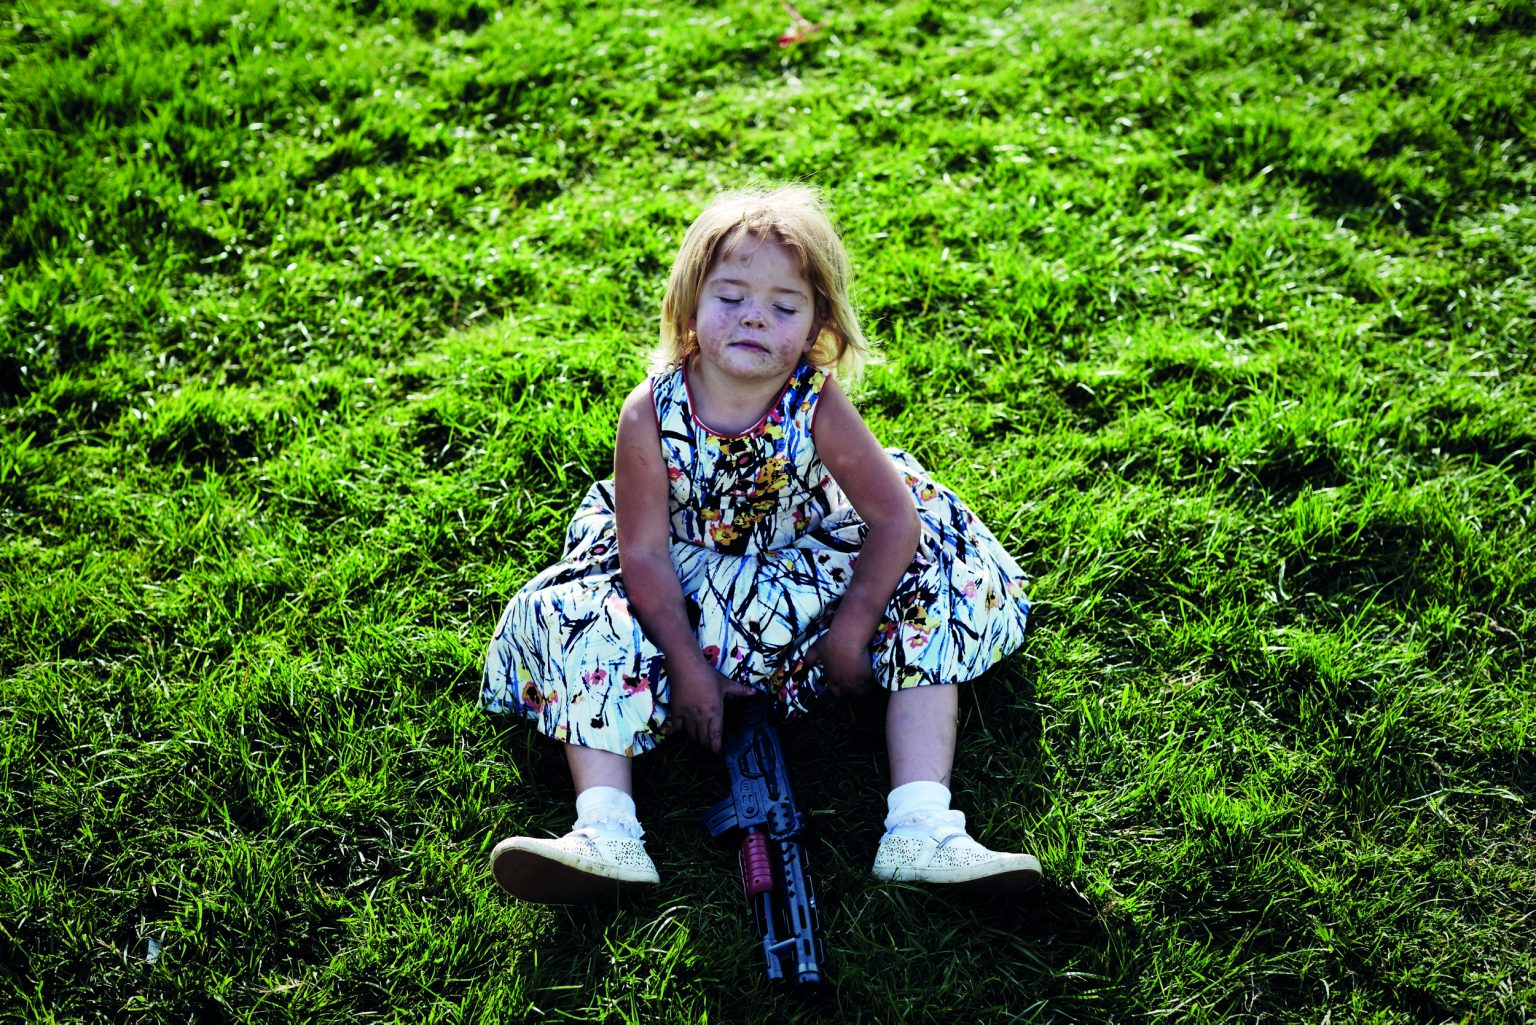 Appleby, United Kingdom, June 2016 - Appleby Horse Fair. Israel with her toy gun. ><  Appleby, Regno Unito, giugno 2016 - Appleby Horse Fair. Israel con la sua pistola giocattolo. *** Local Caption ***